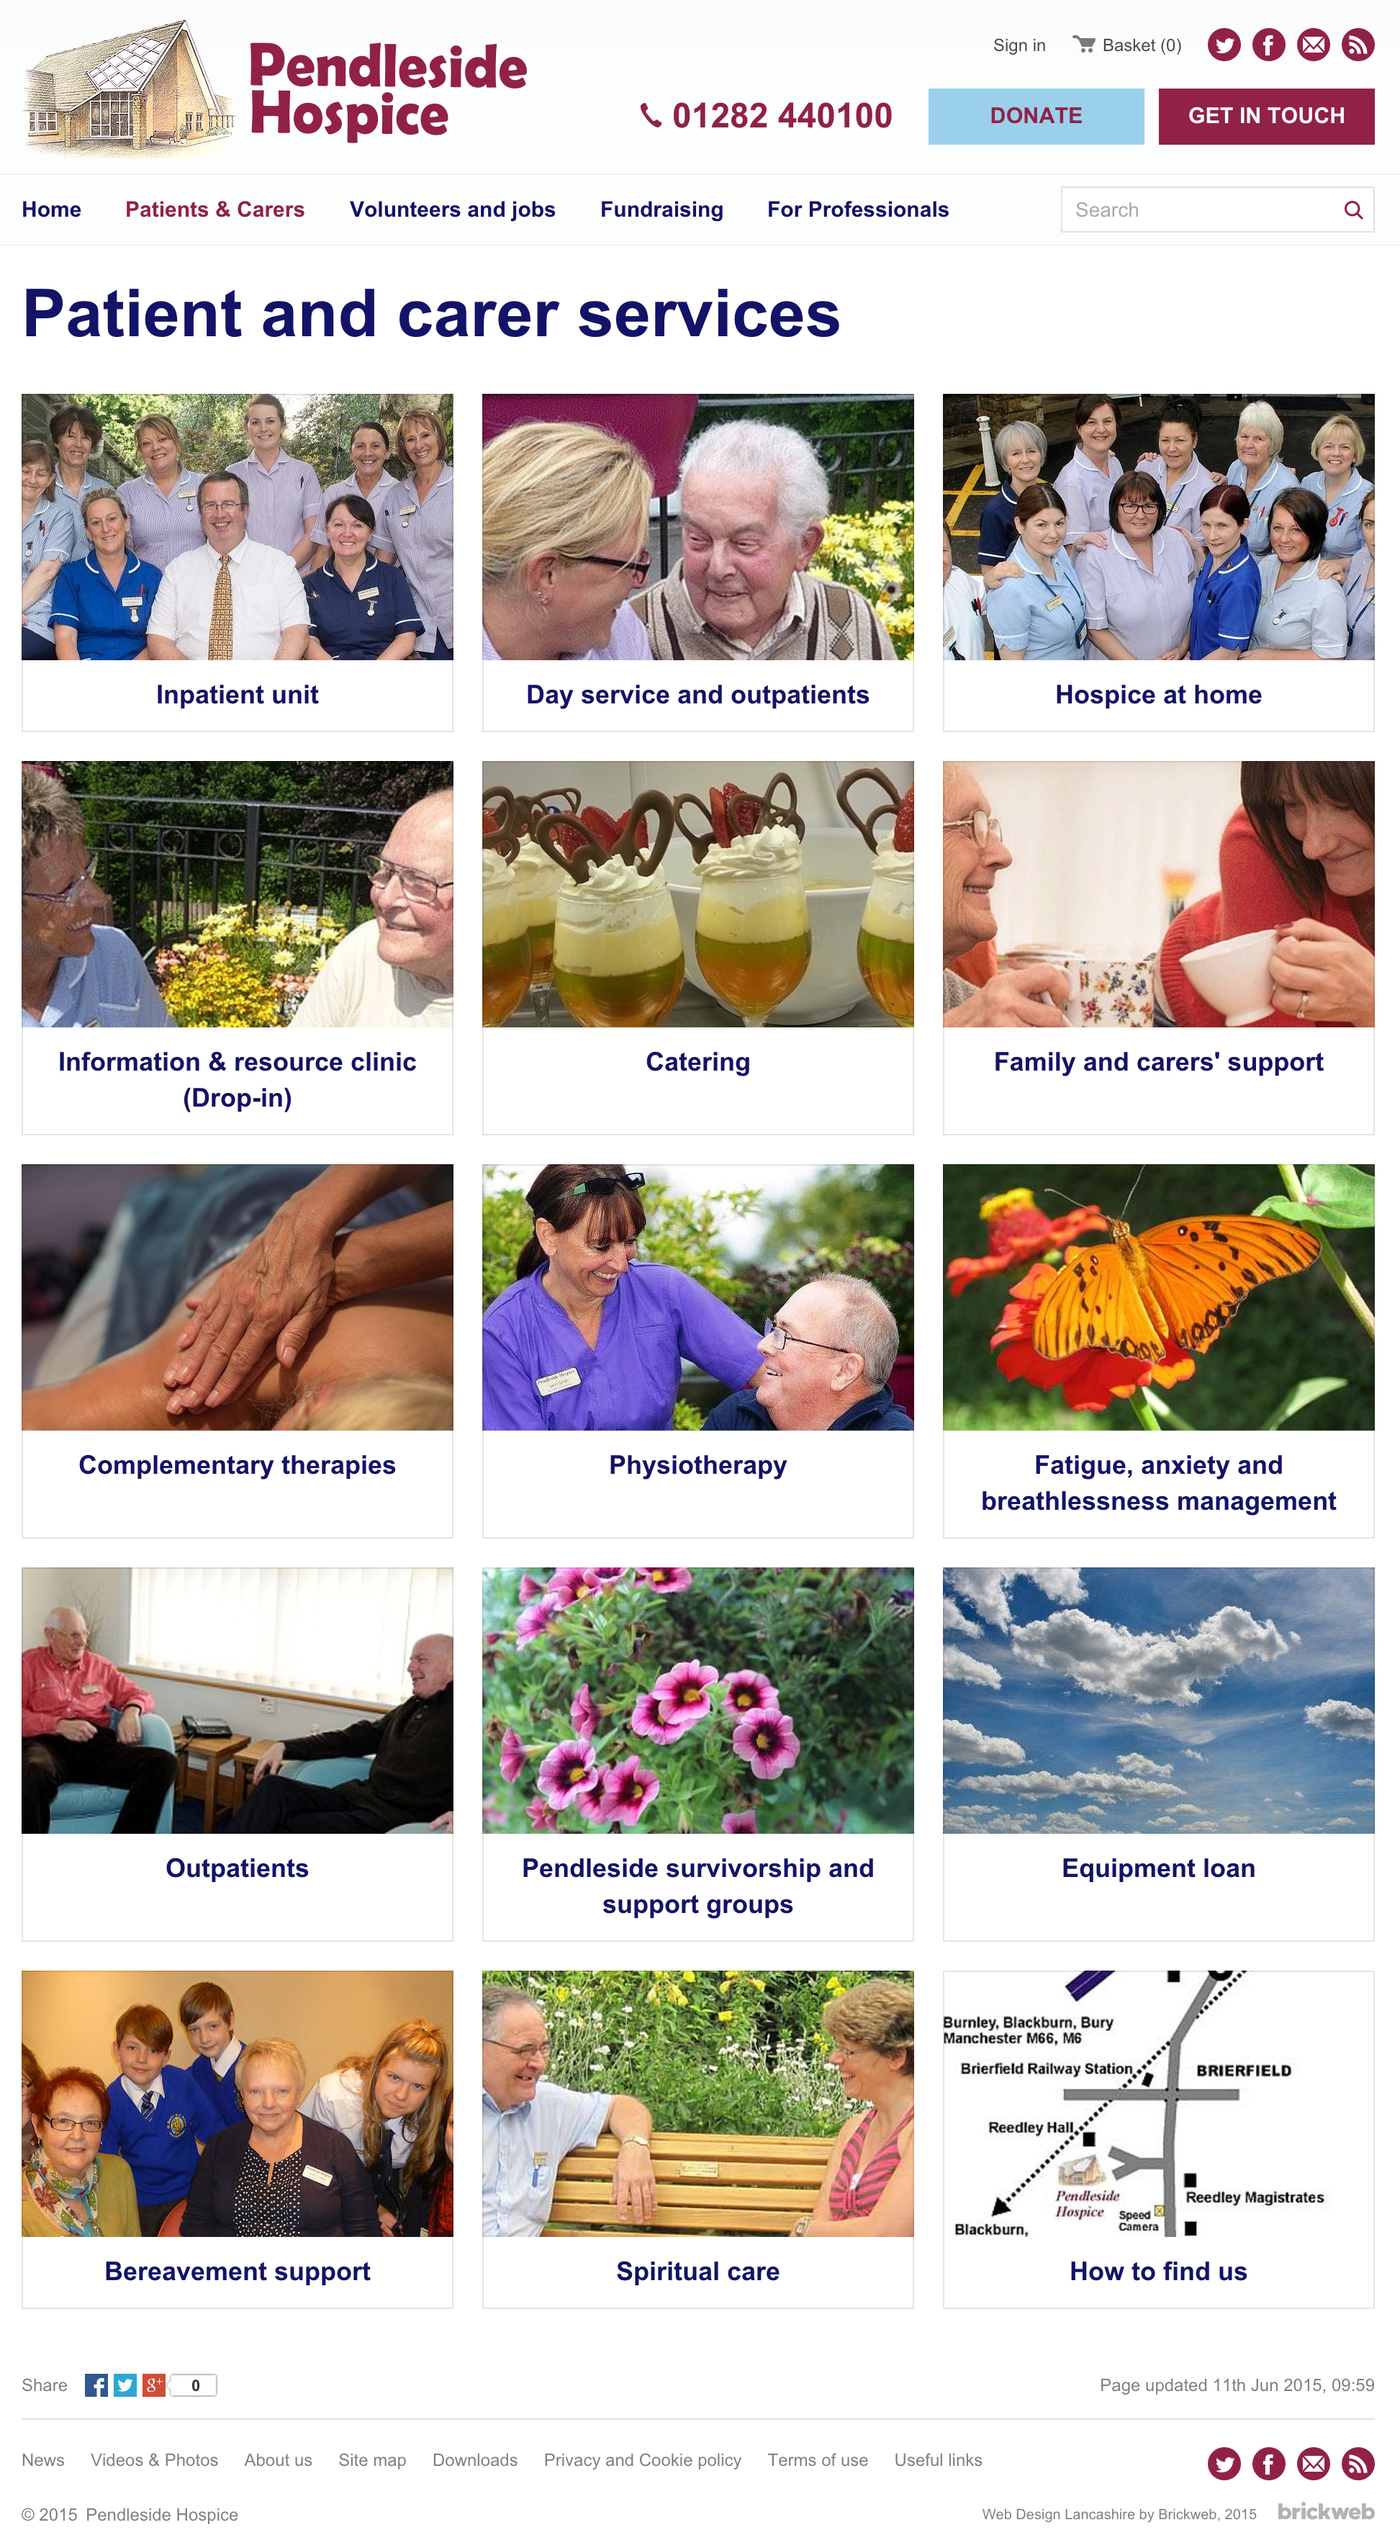 Pendleside Hospice Services